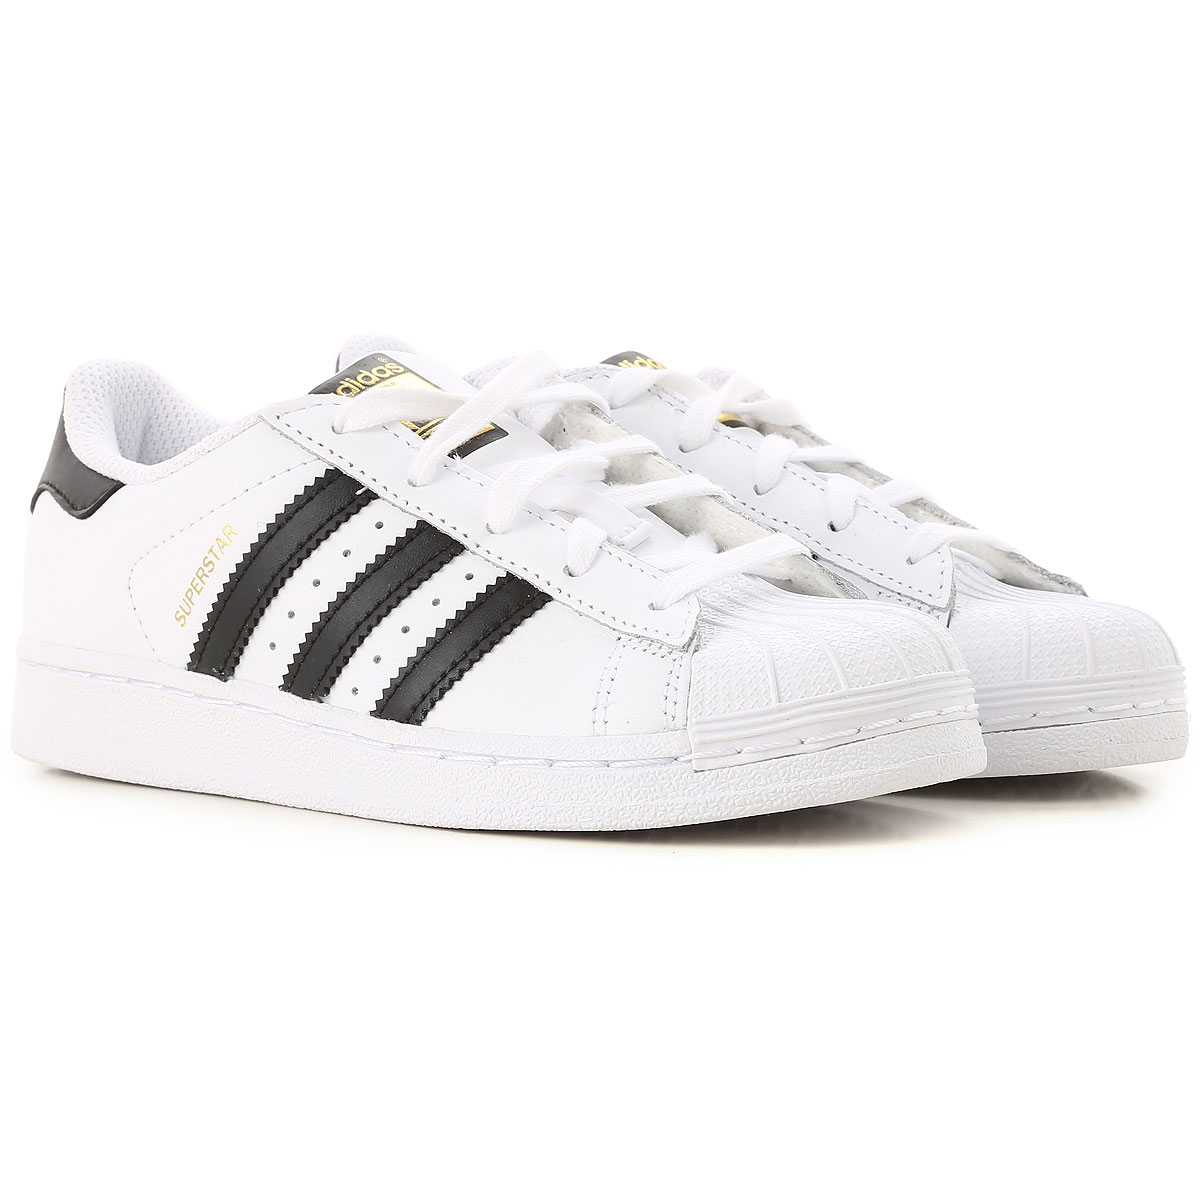 Image of Adidas Kids Shoes for Boys, White, Leather, 2017, 28 29 30 31 32 33 34 35